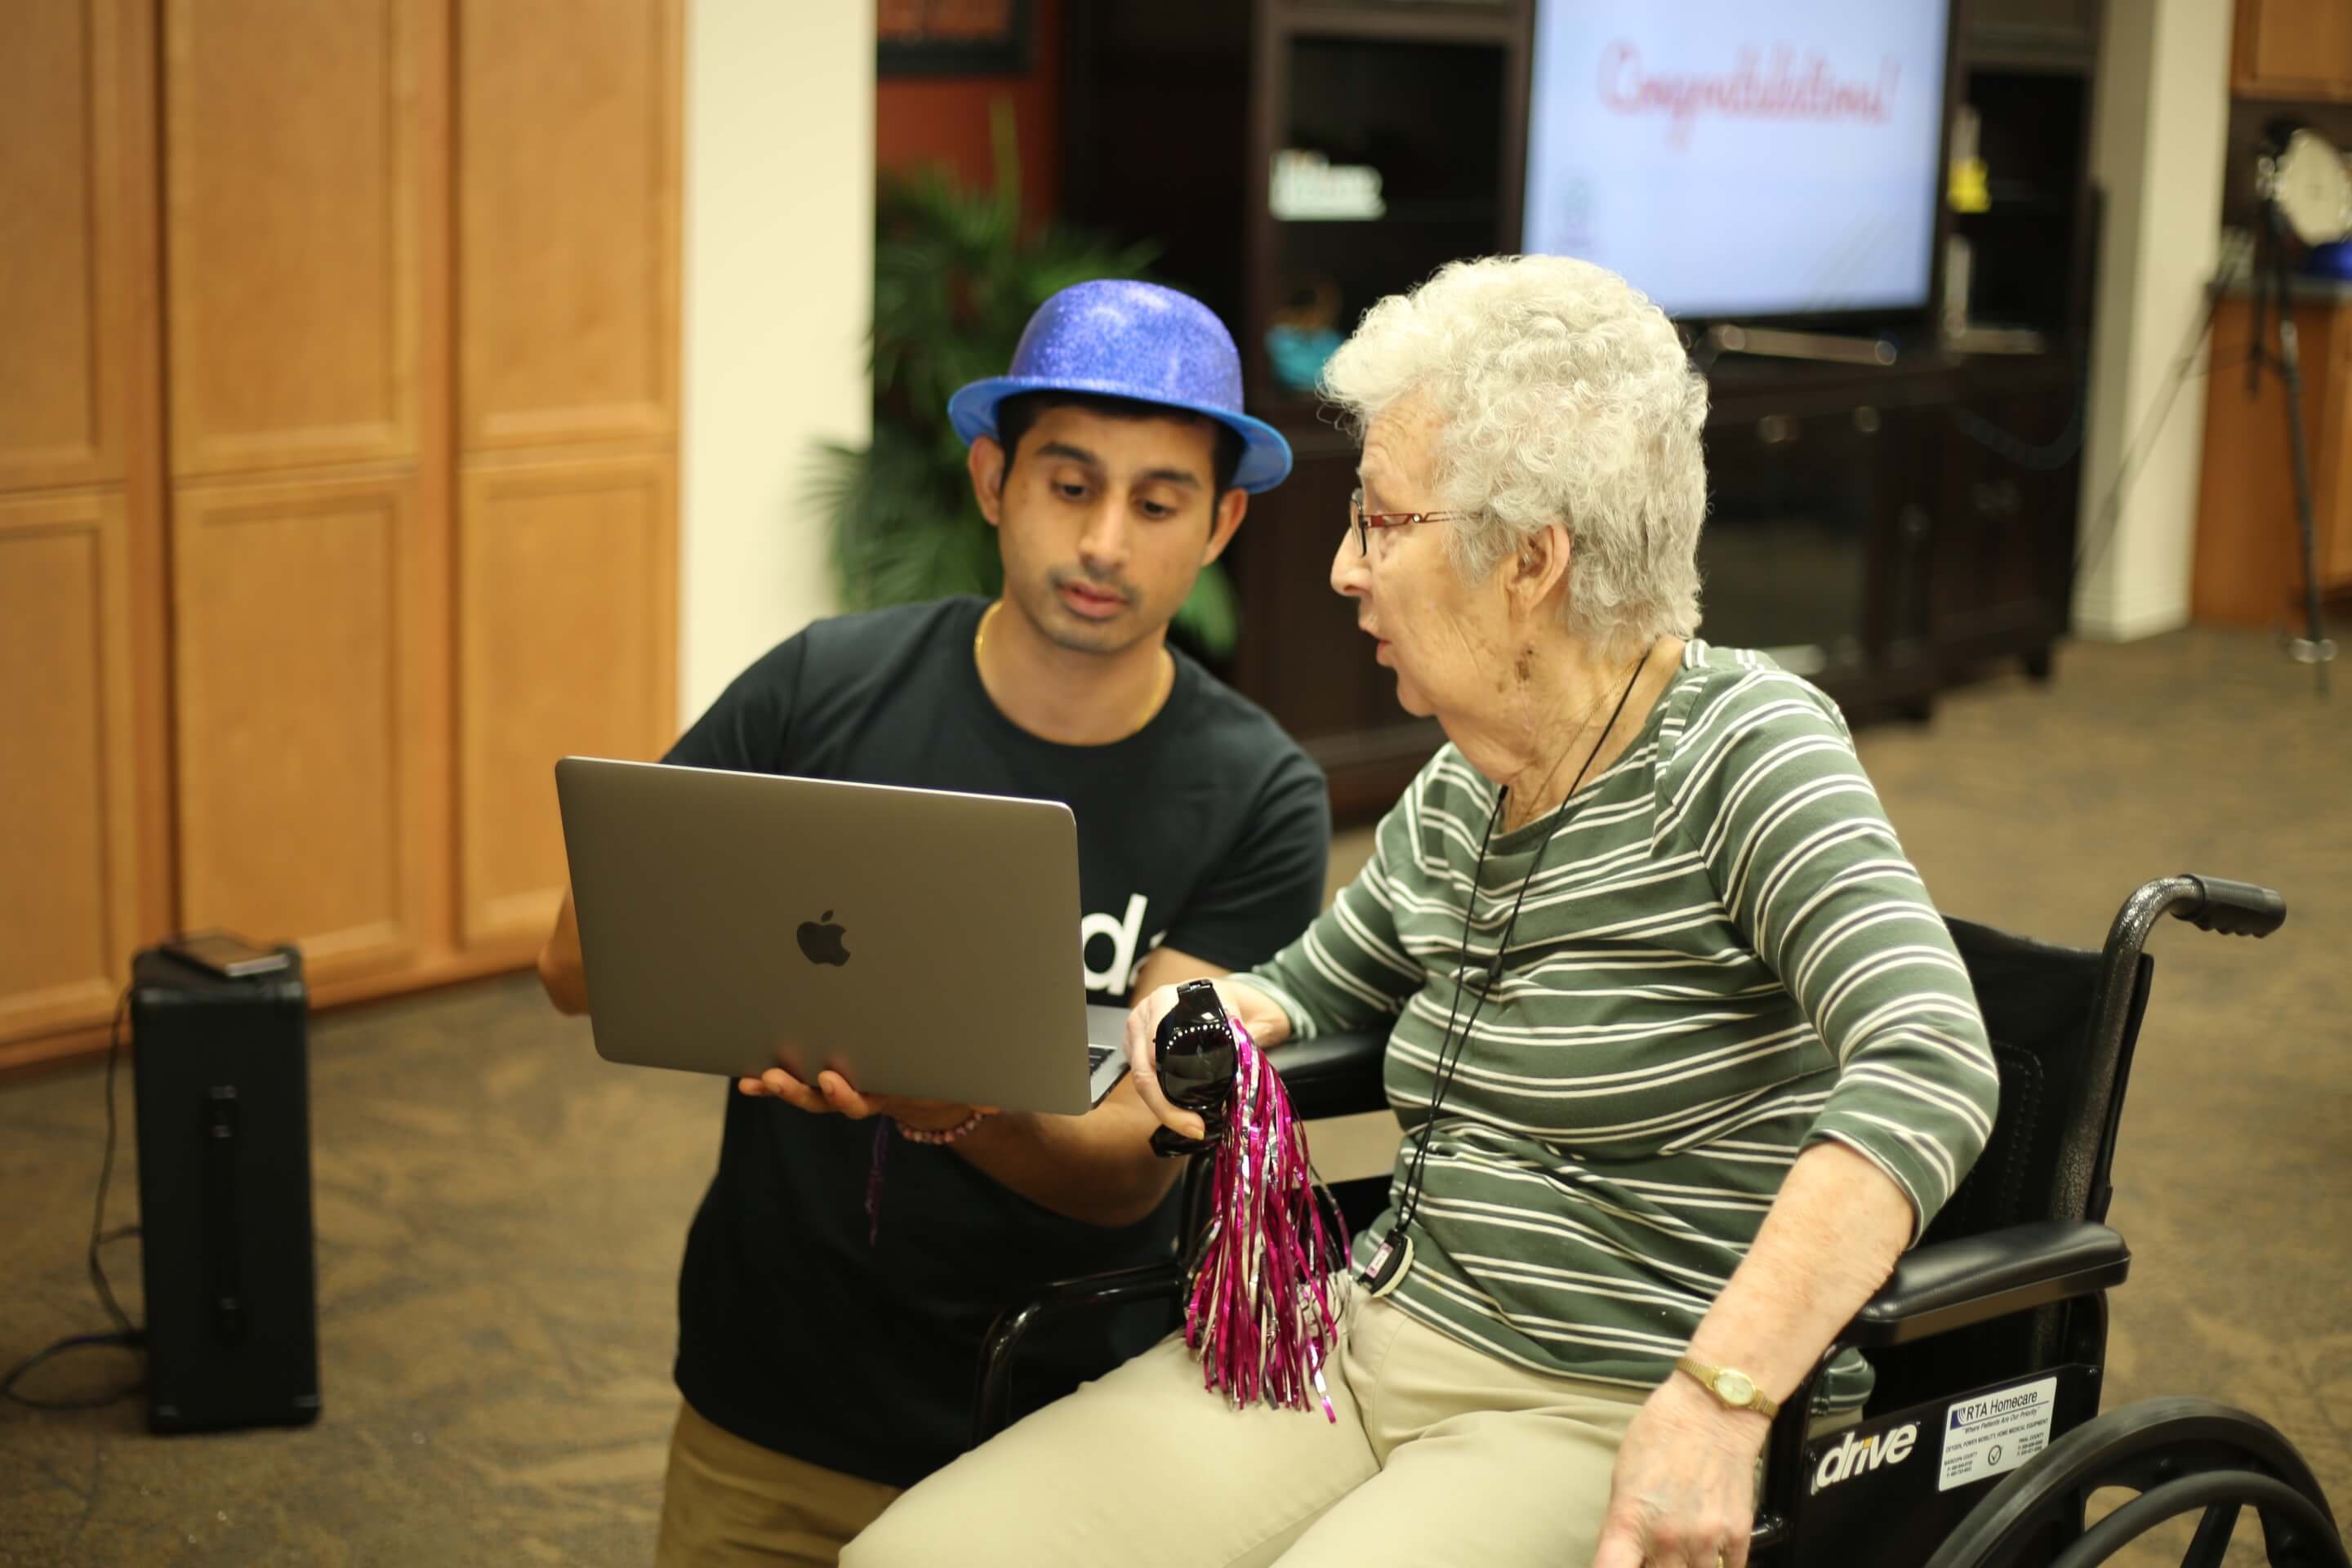 How to Teach Technology to Older Adults